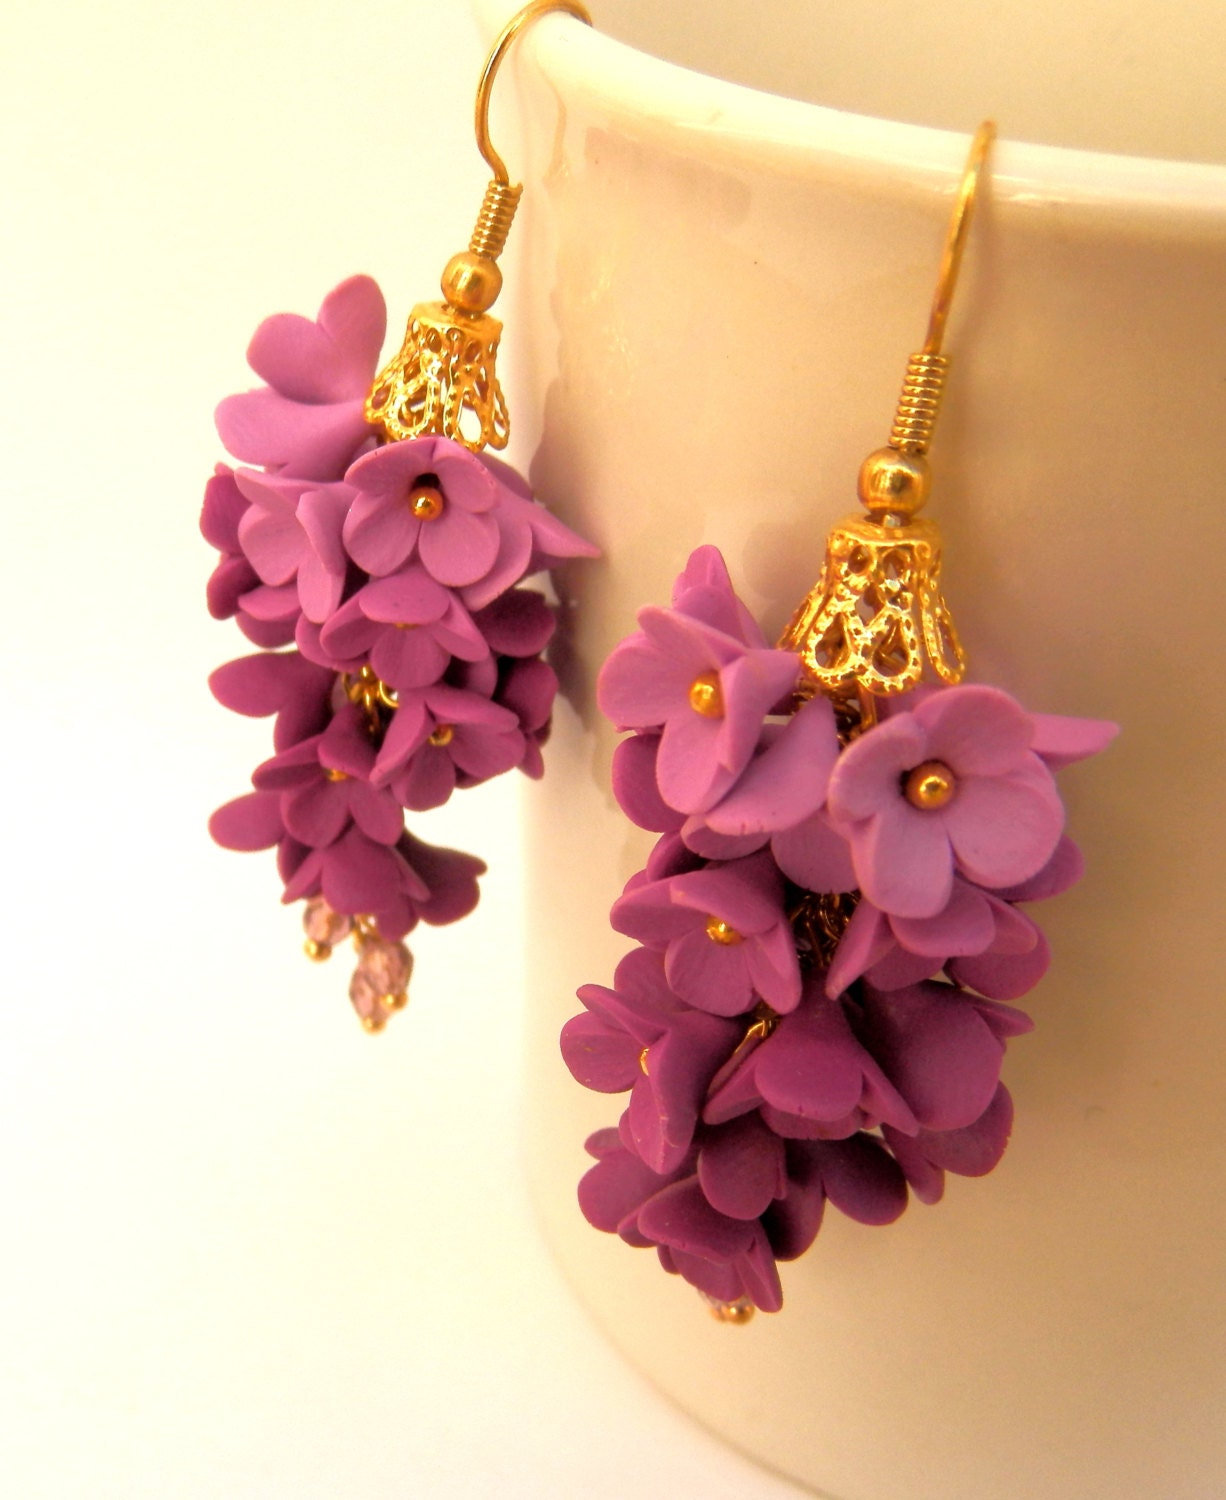 violet flower earrings dangle earrings ombre by insoujewelry. Black Bedroom Furniture Sets. Home Design Ideas